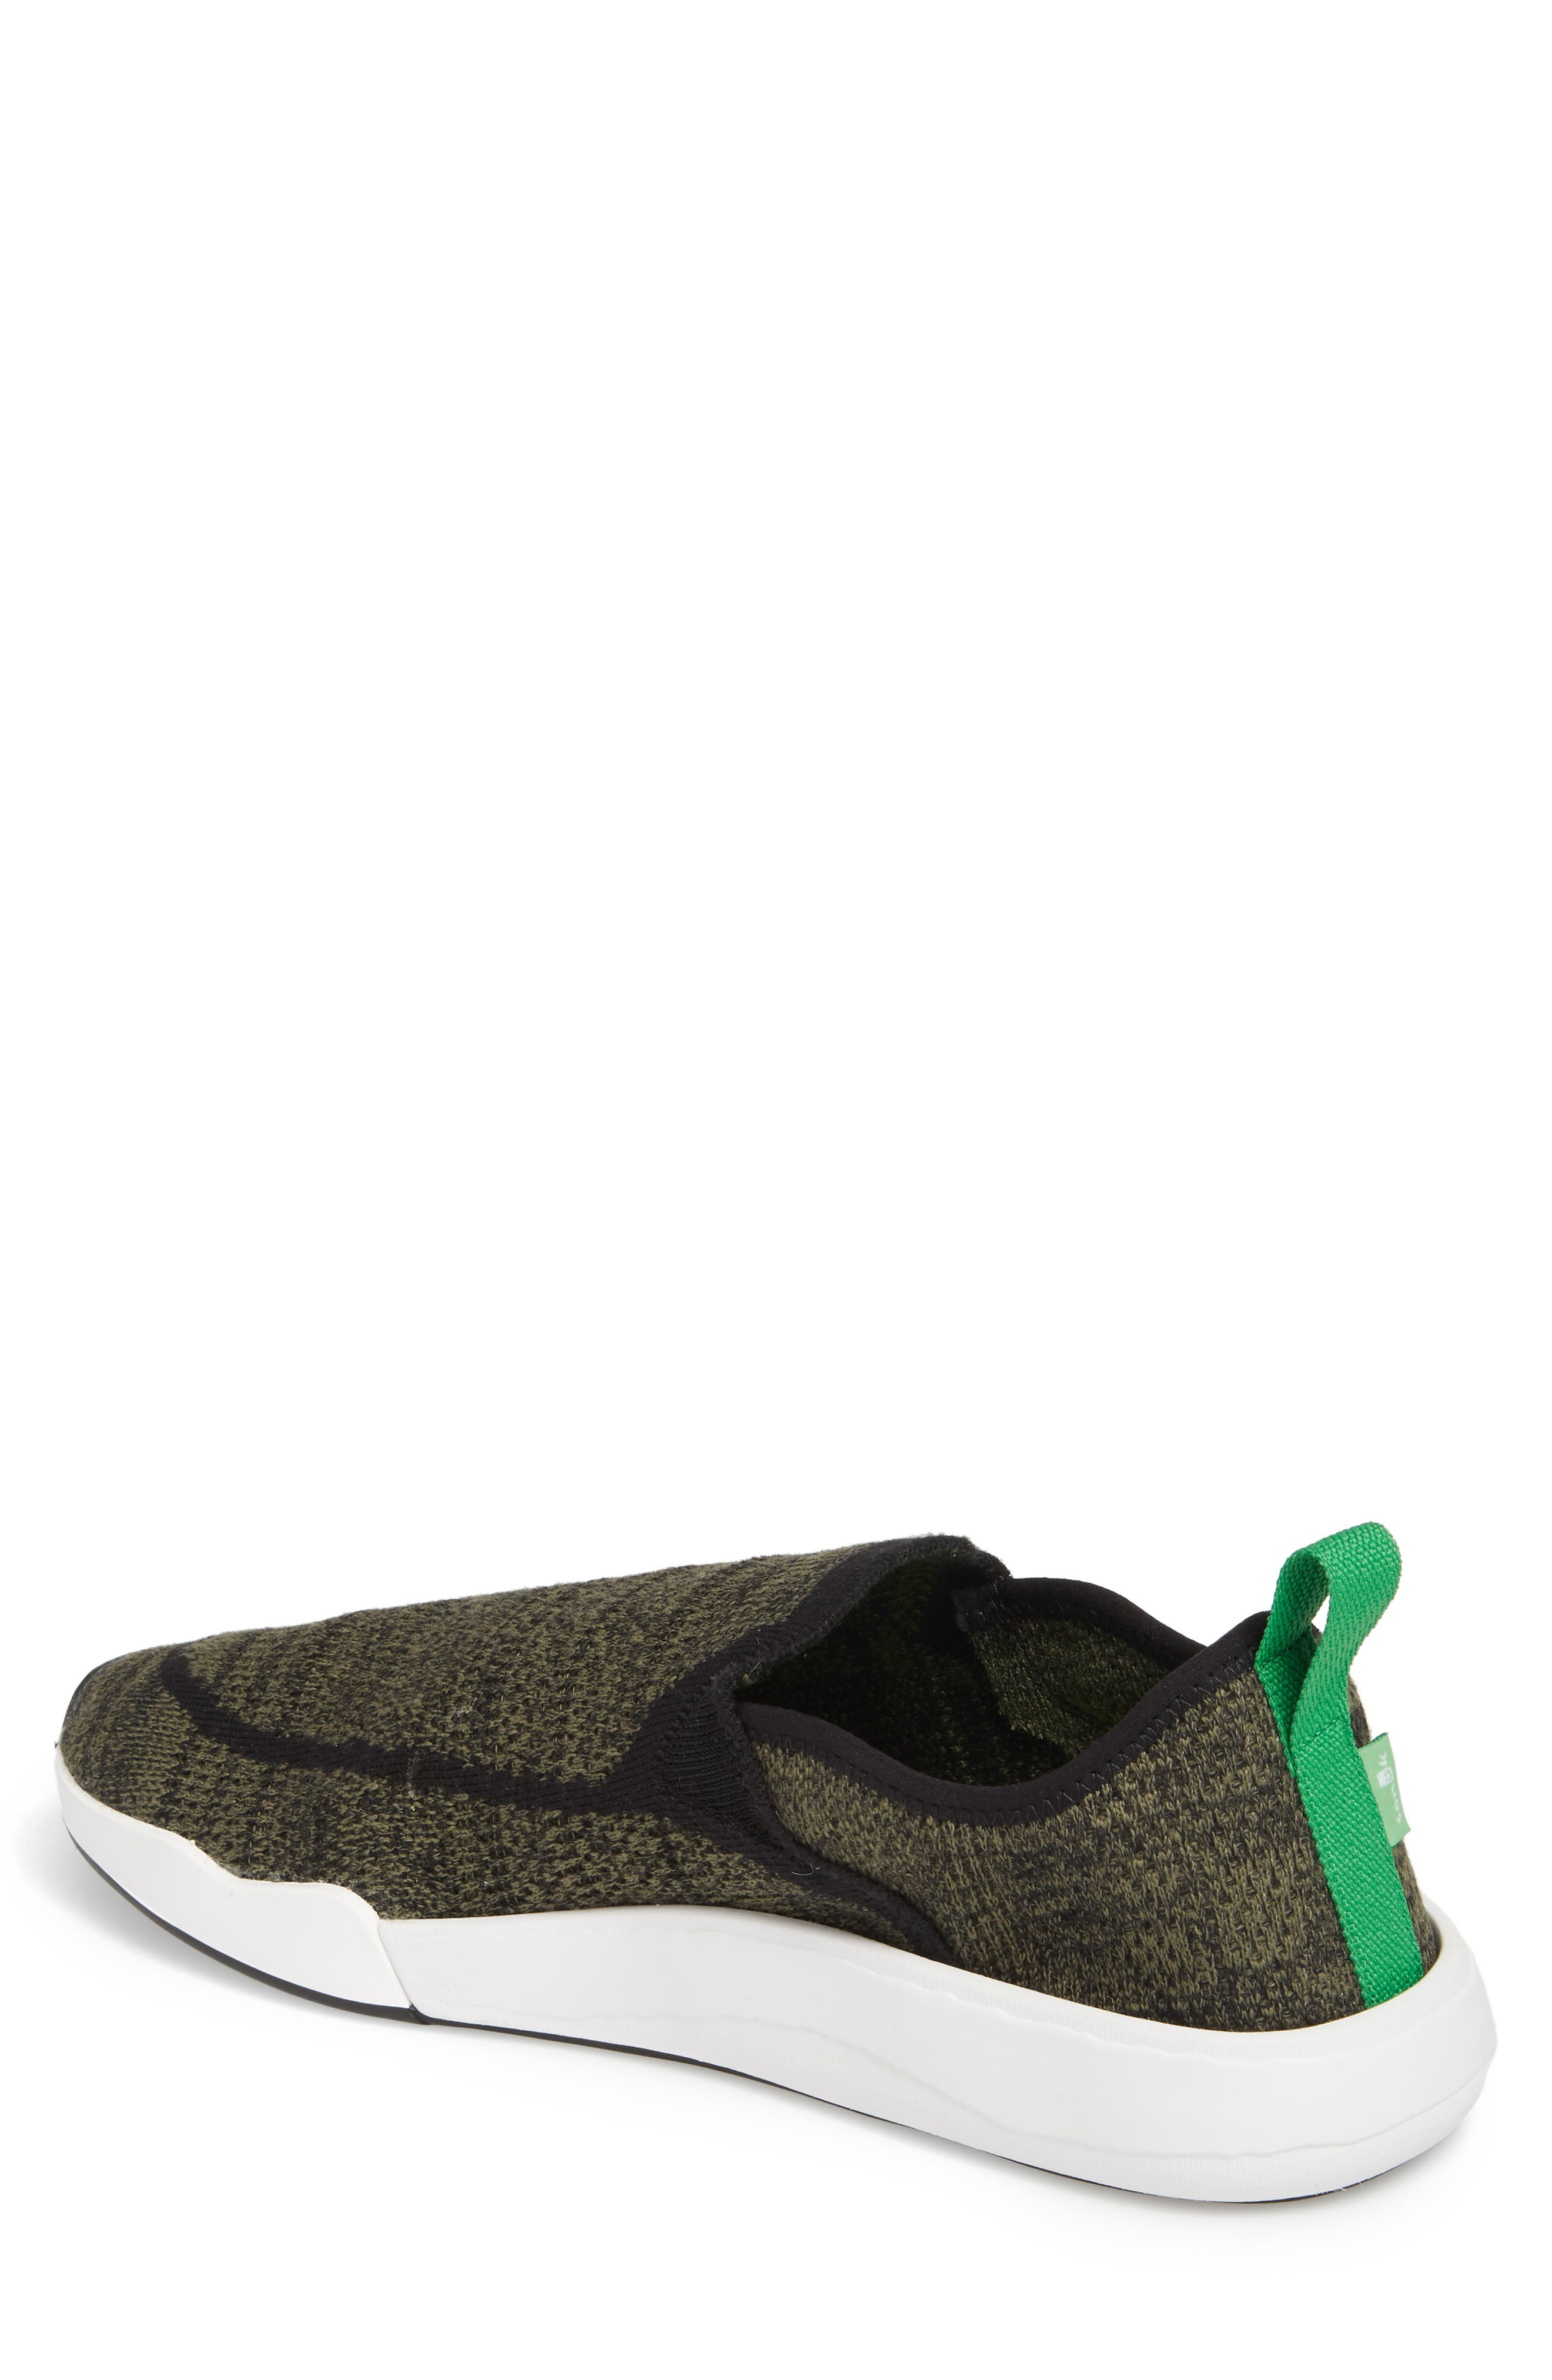 Chiba Quest Knit Slip-On Sneaker,                             Alternate thumbnail 2, color,                             OLIVE